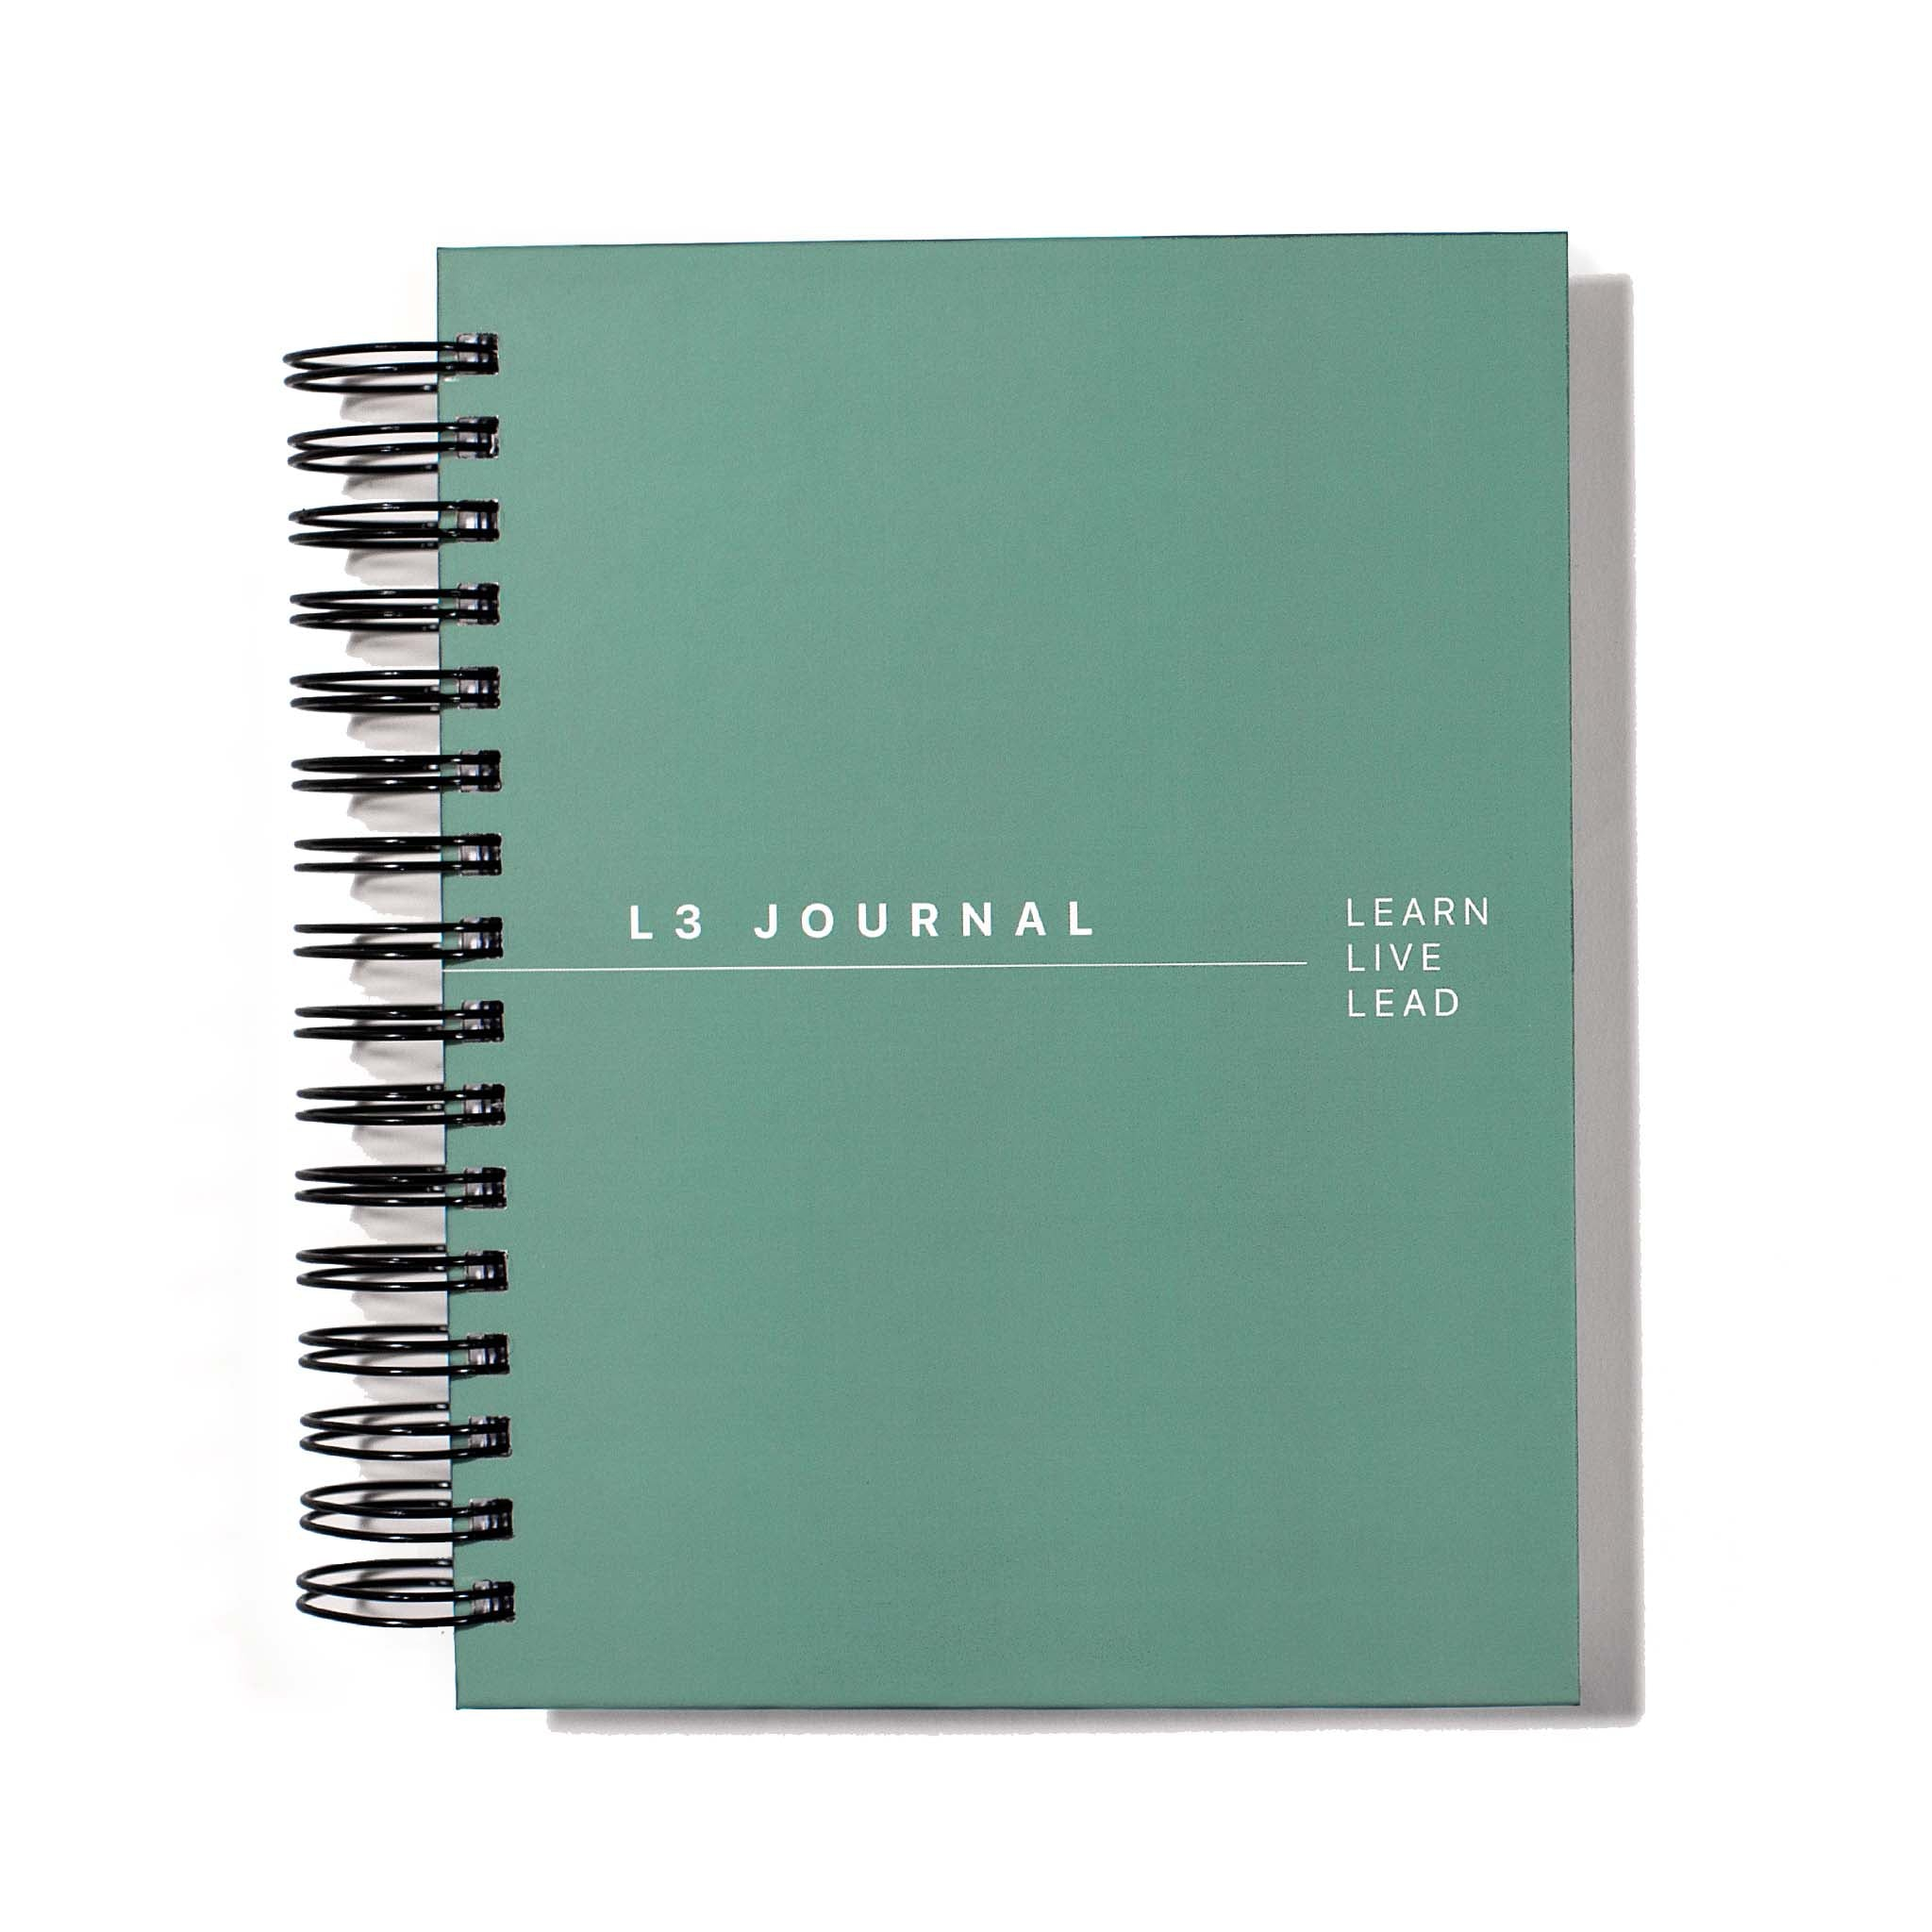 L3 Journal Hardcover